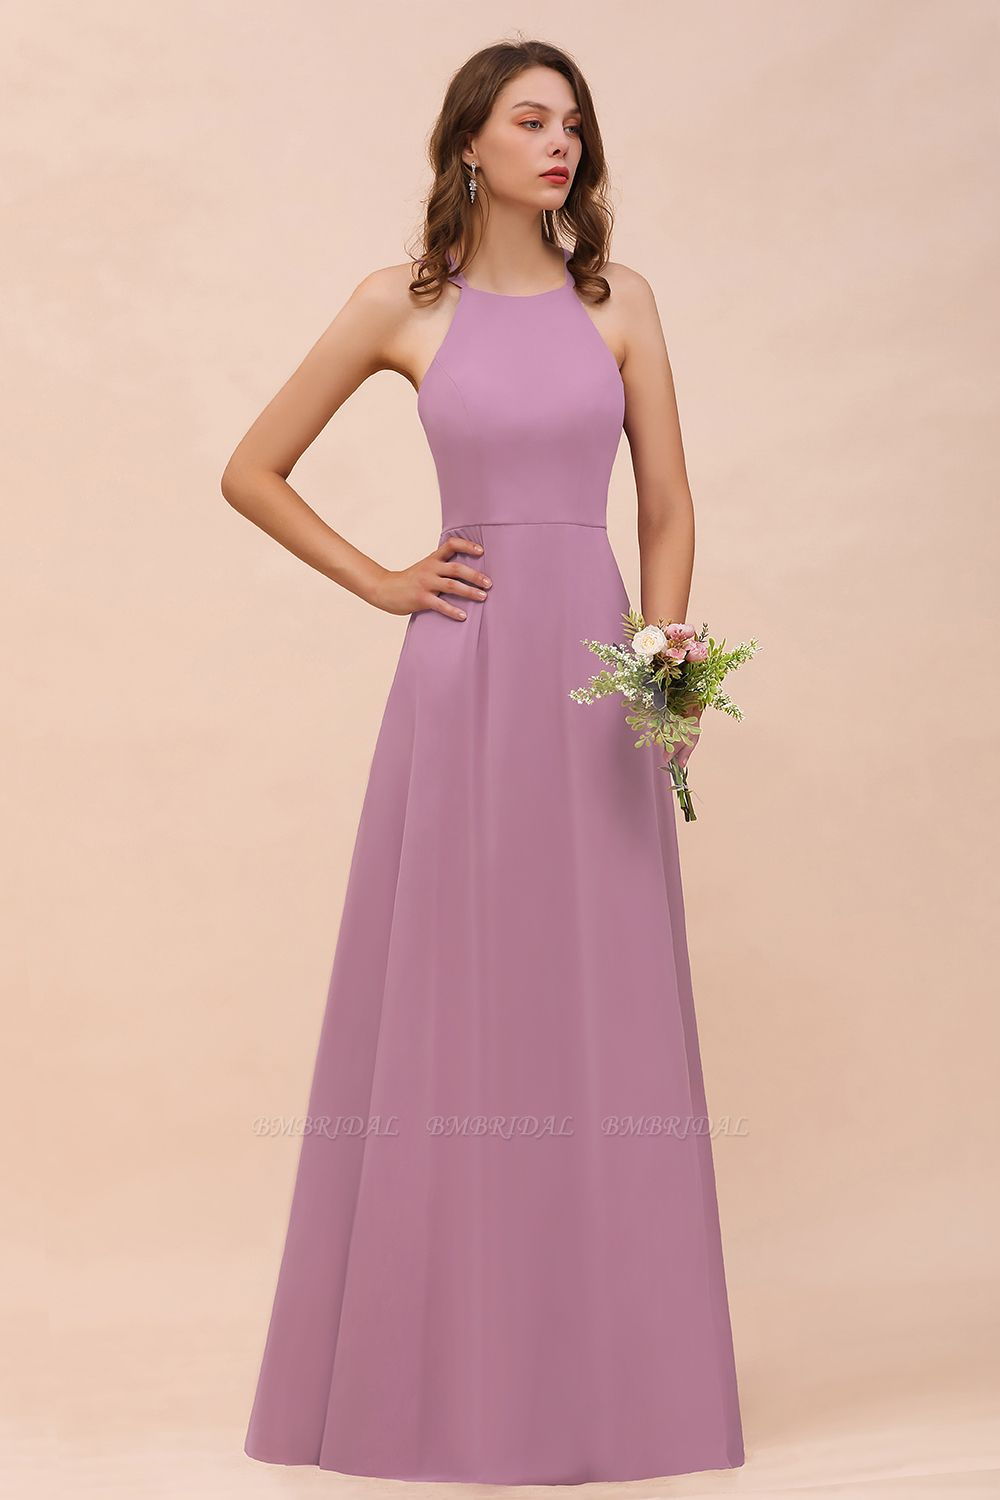 Gorgeous Halter Wisteria Chiffon Bridesmaid Dresses with Draped Back